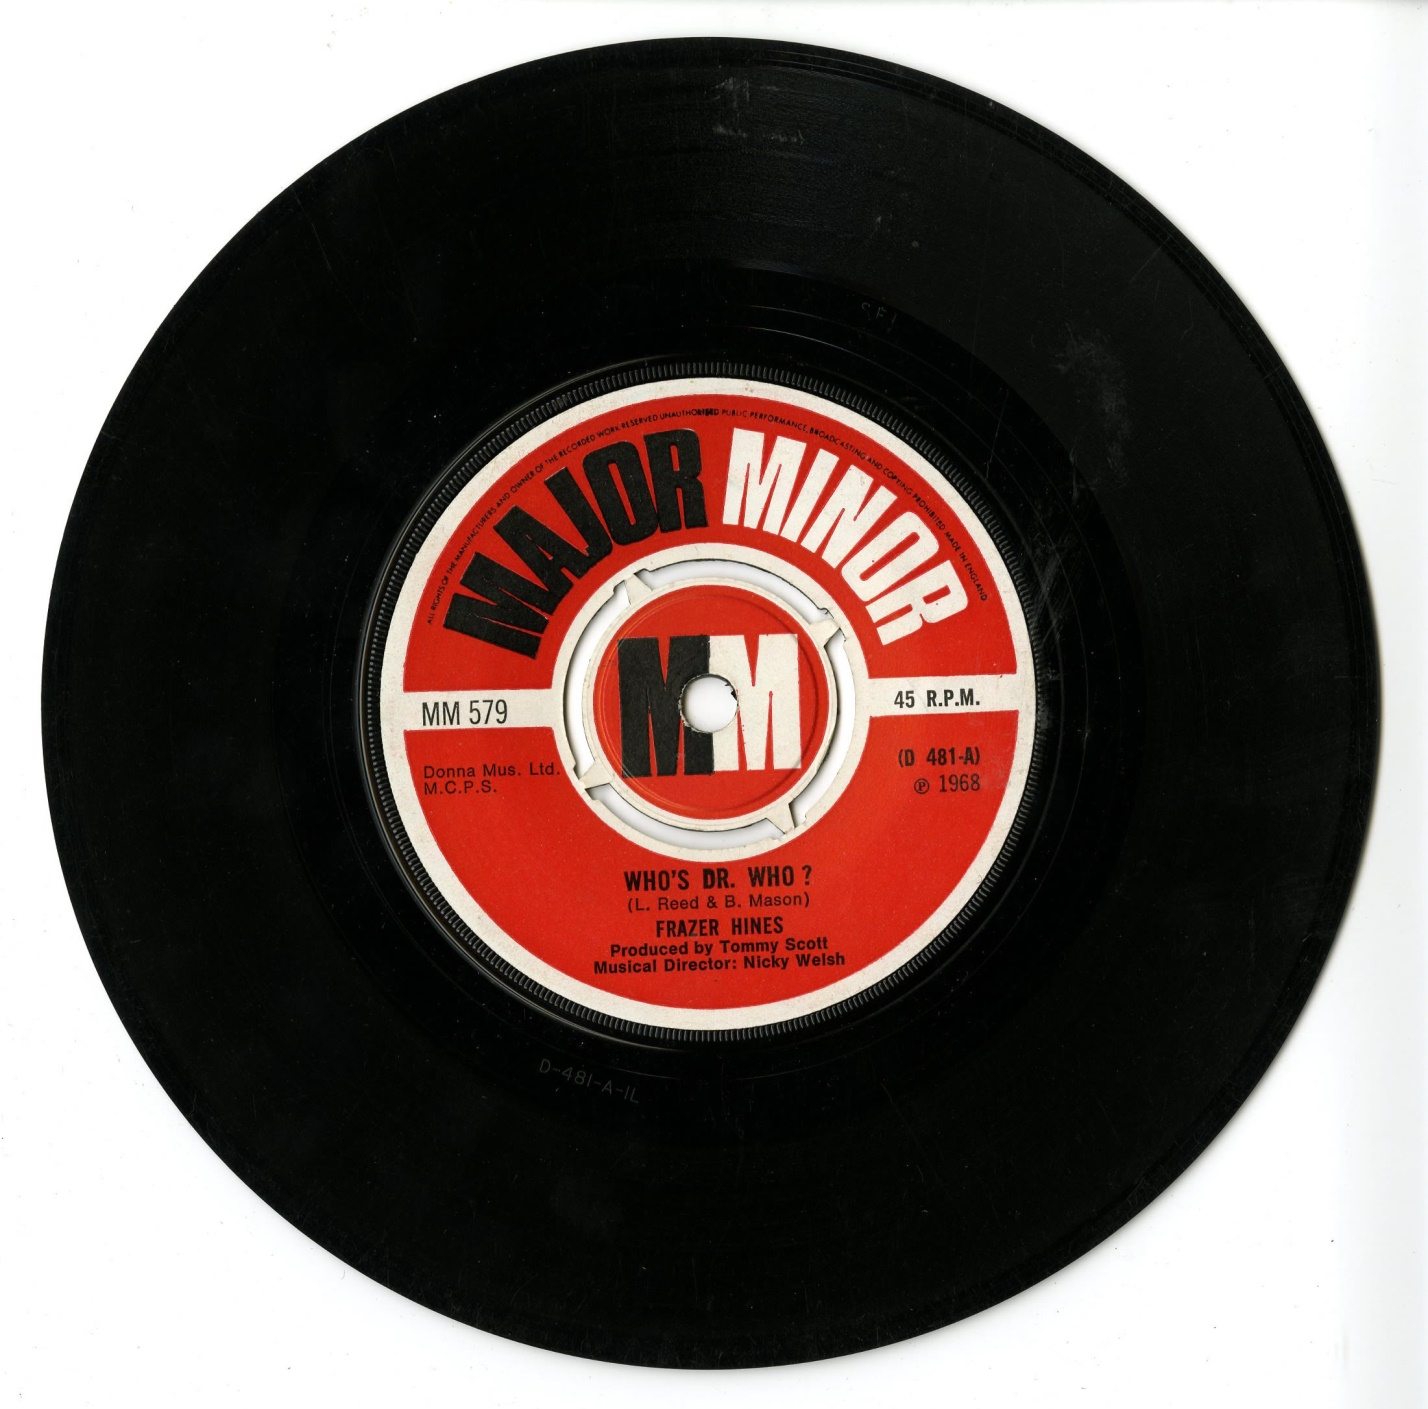 Who's Dr. Who? by Frazer Hines, released by Major Minor Records (catalogue no. MM579)